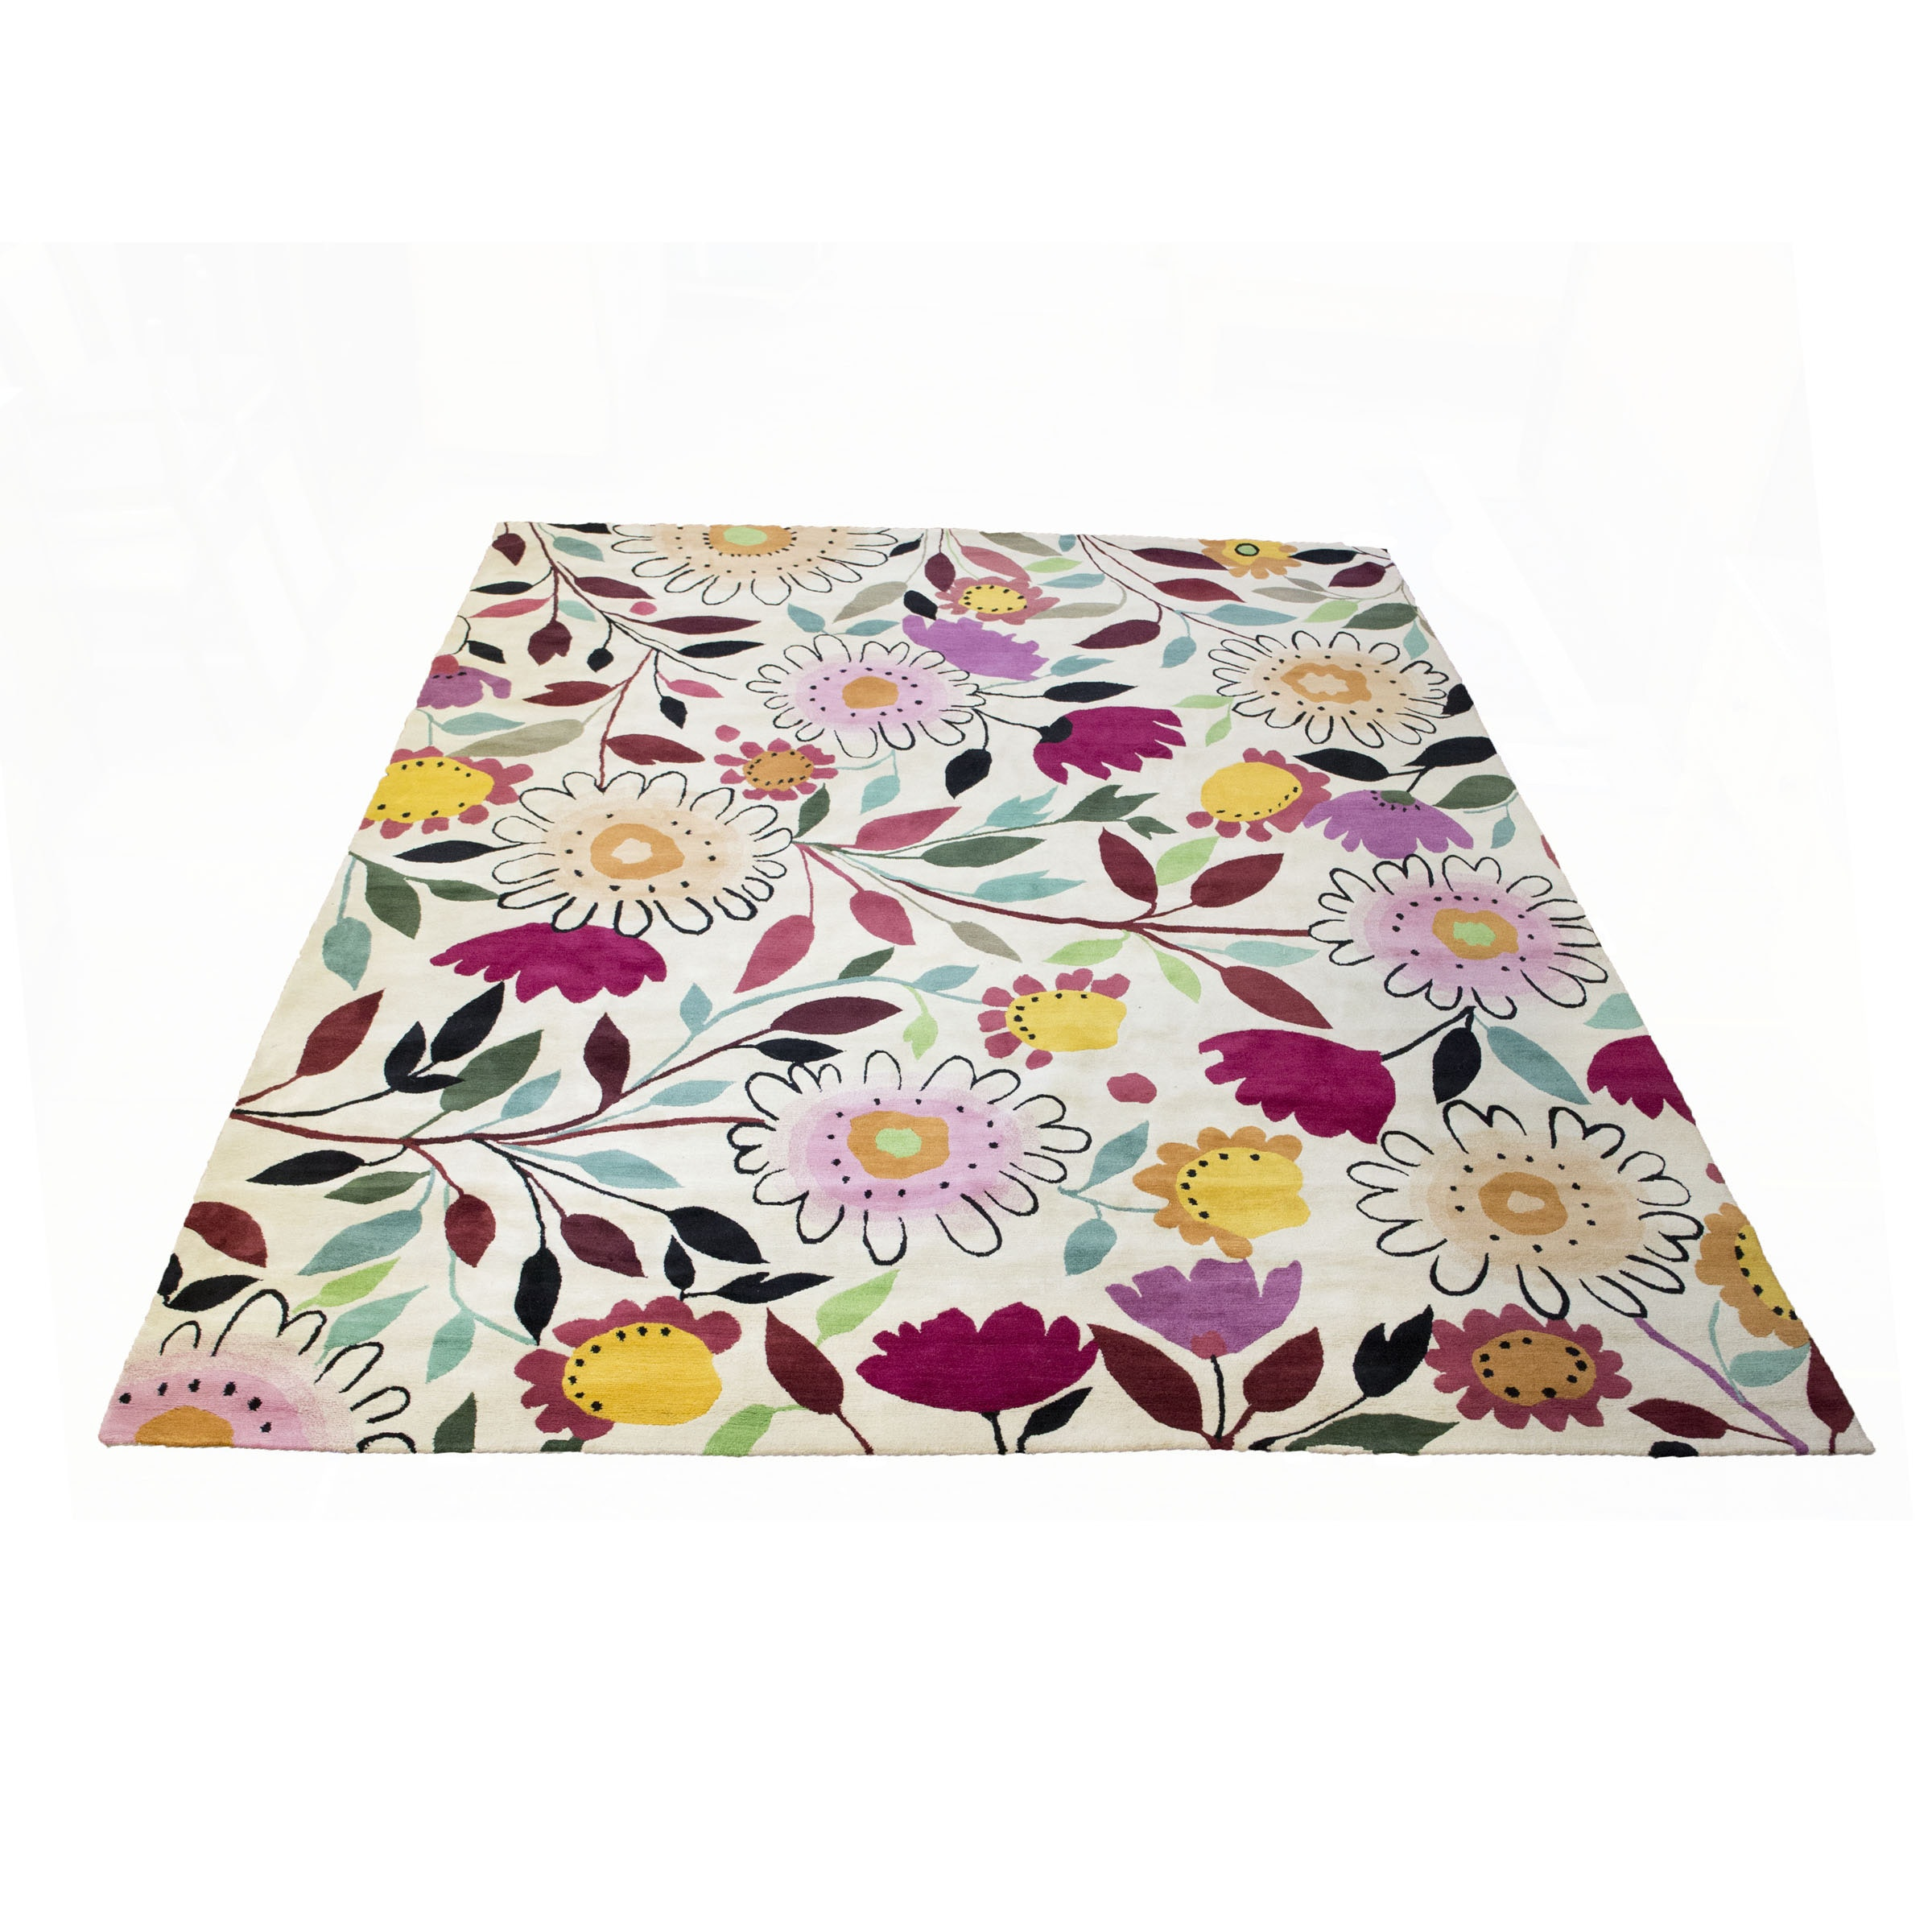 Hand-Knotted Contemporary Floral Wool Room Size Rug